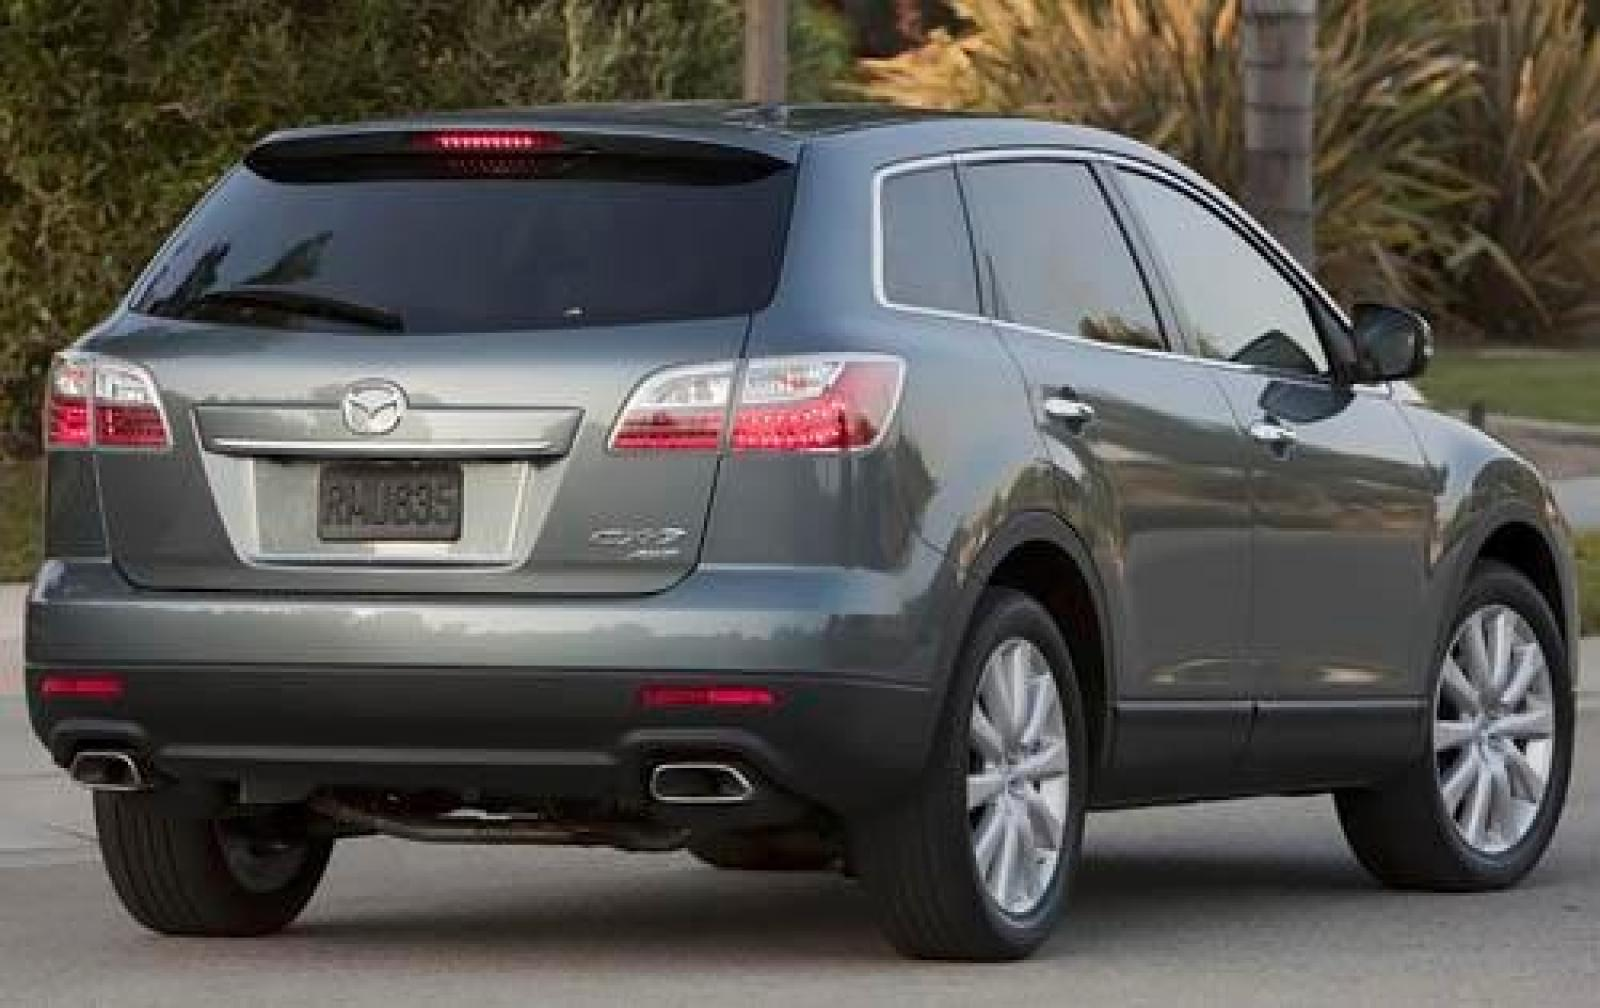 2012 mazda cx 9 information and photos zombiedrive. Black Bedroom Furniture Sets. Home Design Ideas